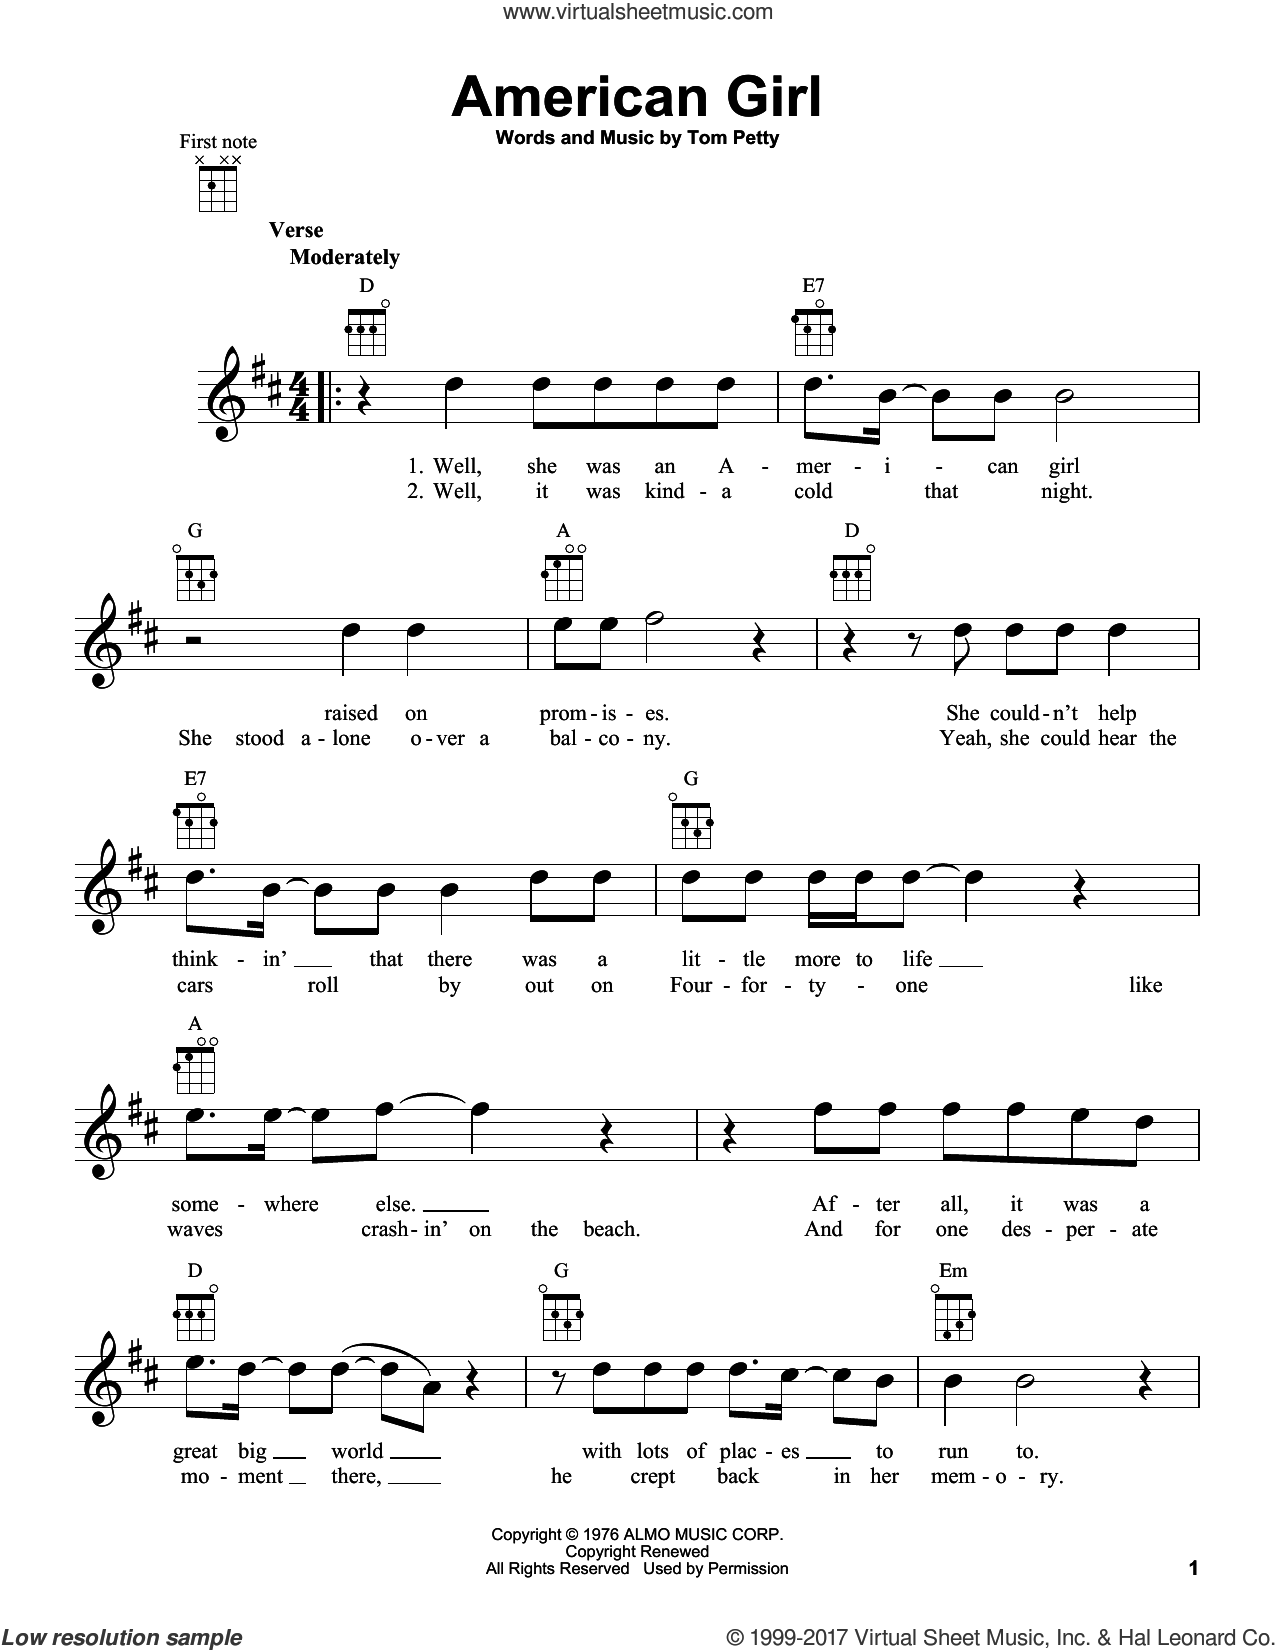 American Girl sheet music for ukulele by Tom Petty, intermediate skill level